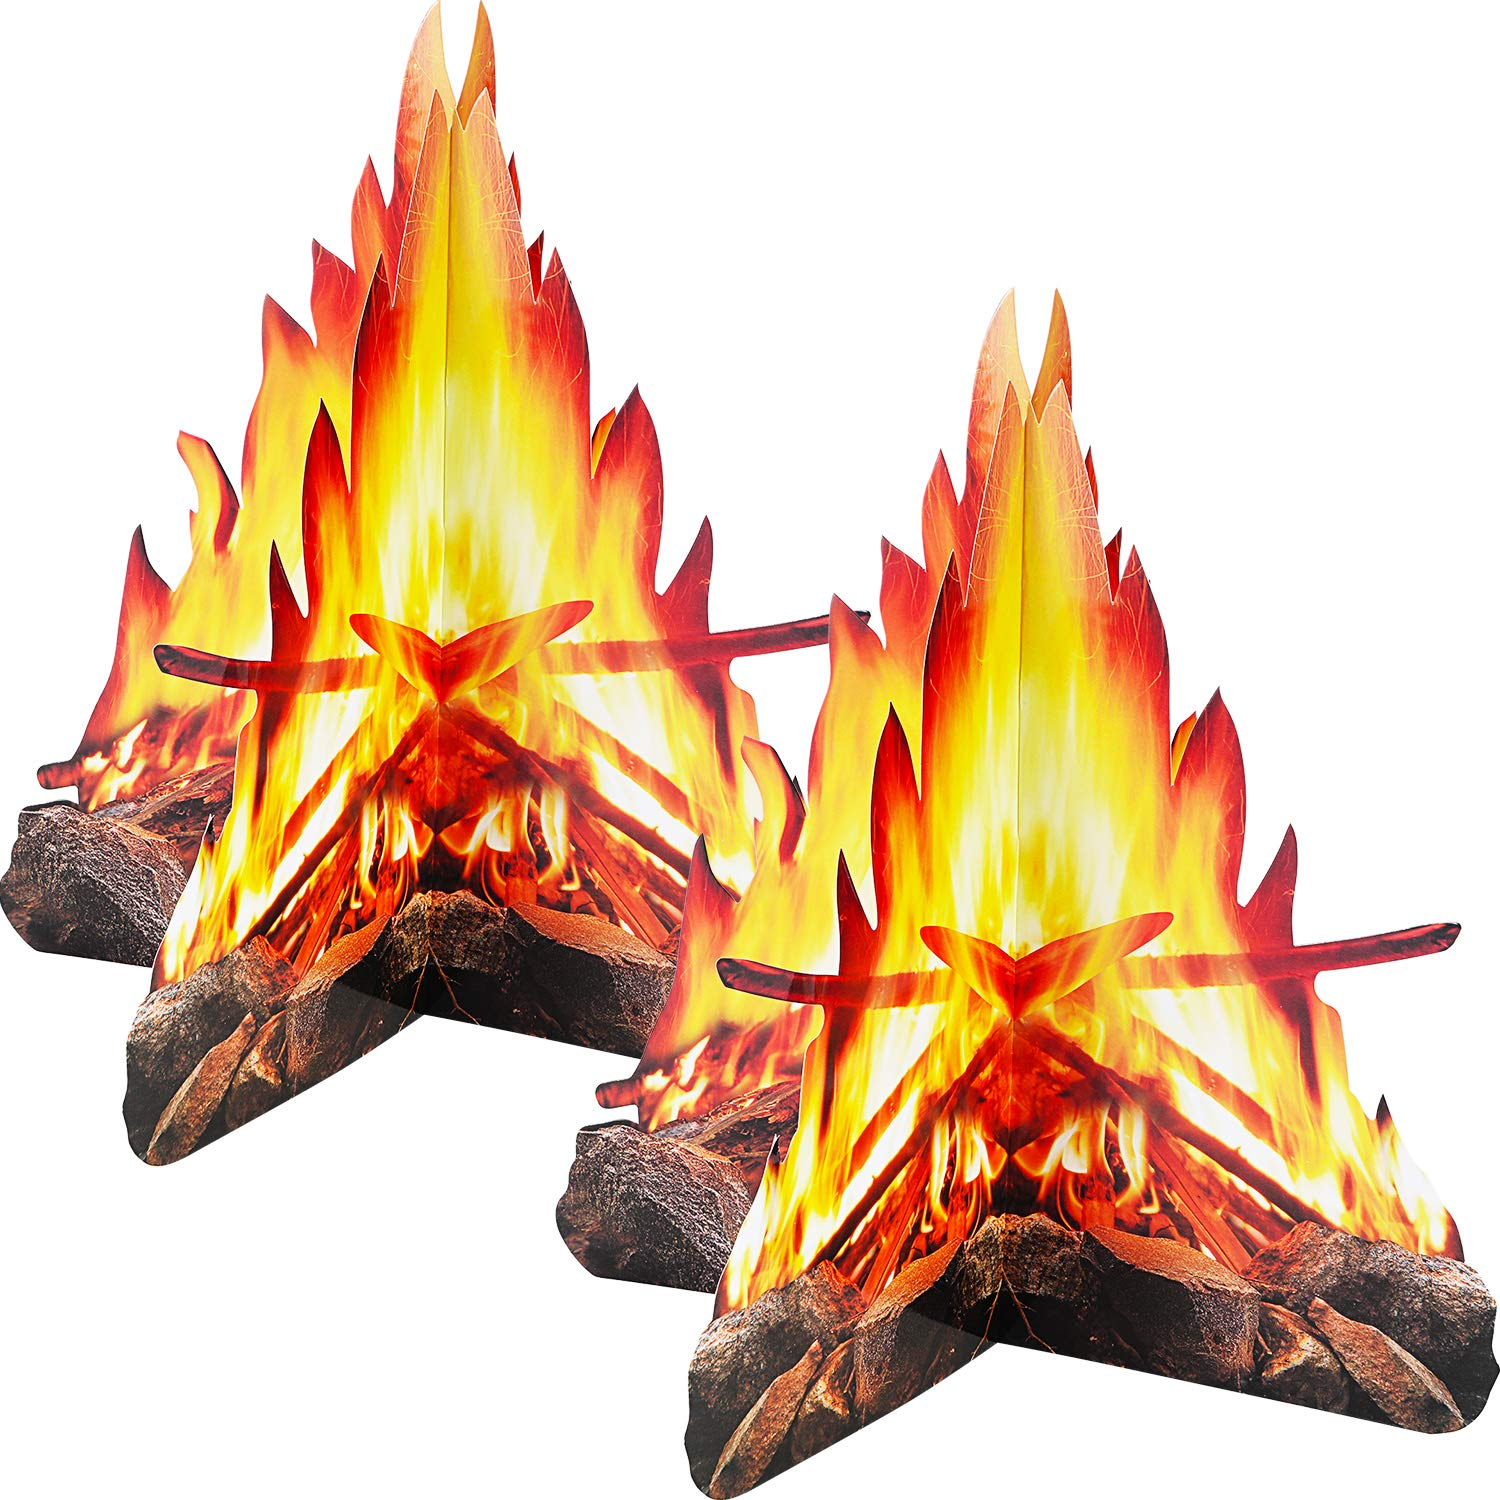 Tatuo 12 Inch Tall Artificial Fire Fake Flame Paper 3D Decorative Cardboard Campfire Centerpiece Flame Torch for Christmas Party Decoration, 2 Set